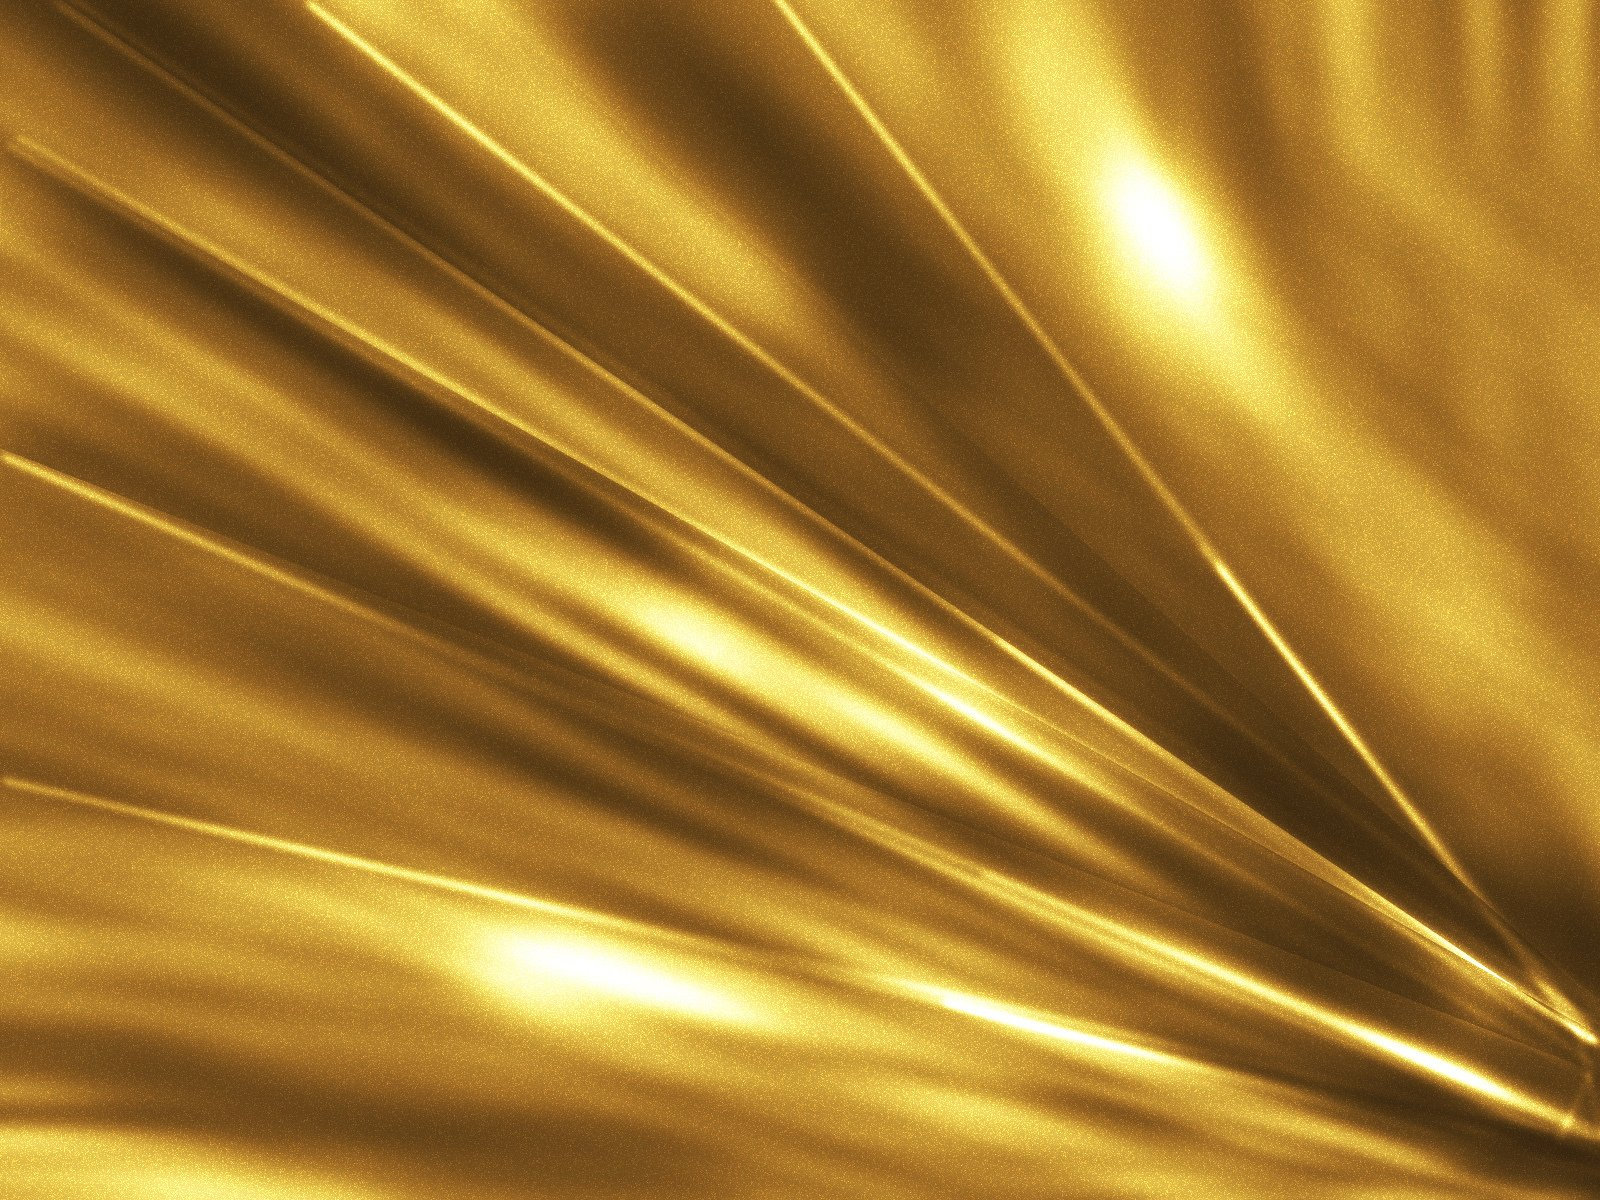 40 HD Gold Wallpaper Backgrounds For Desktop Download 1600x1200